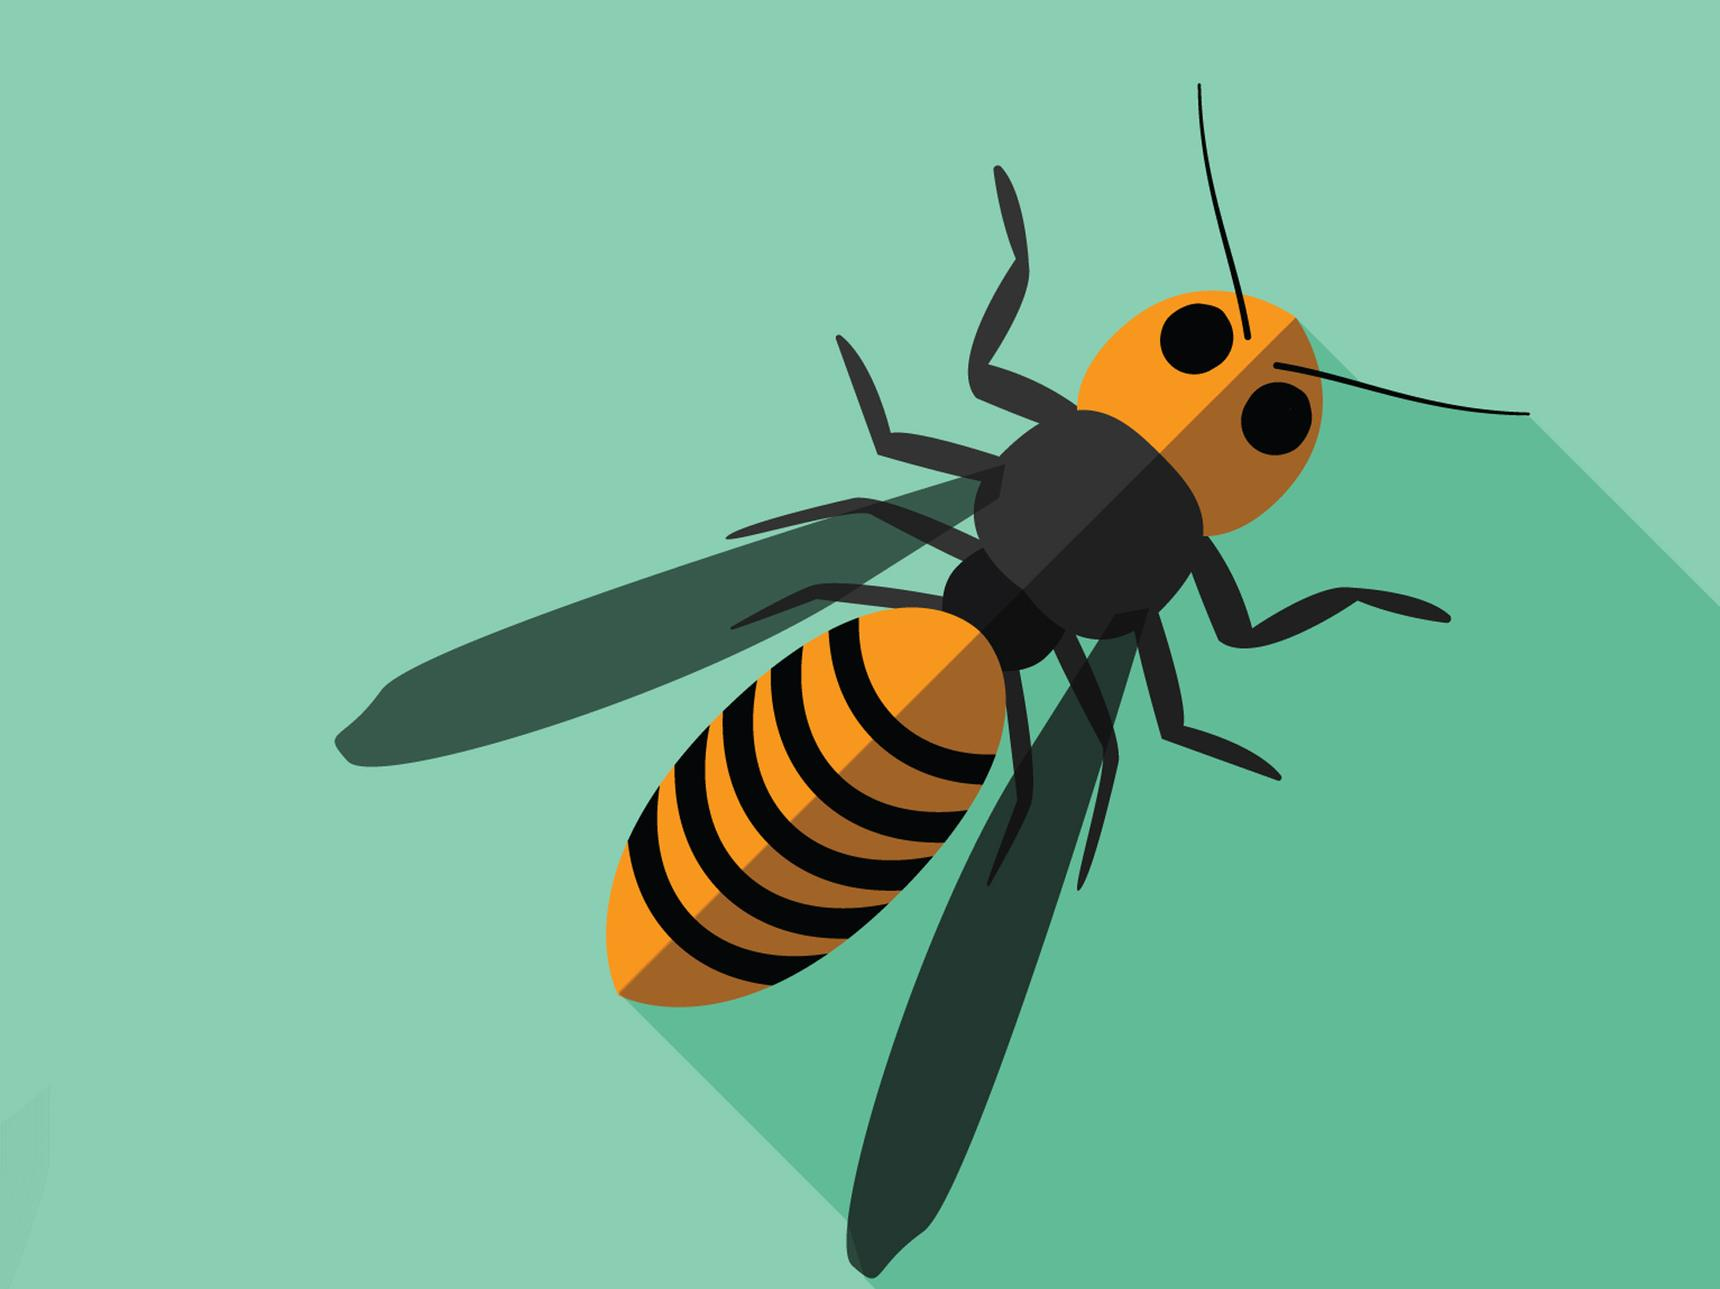 Illustration of a hornet